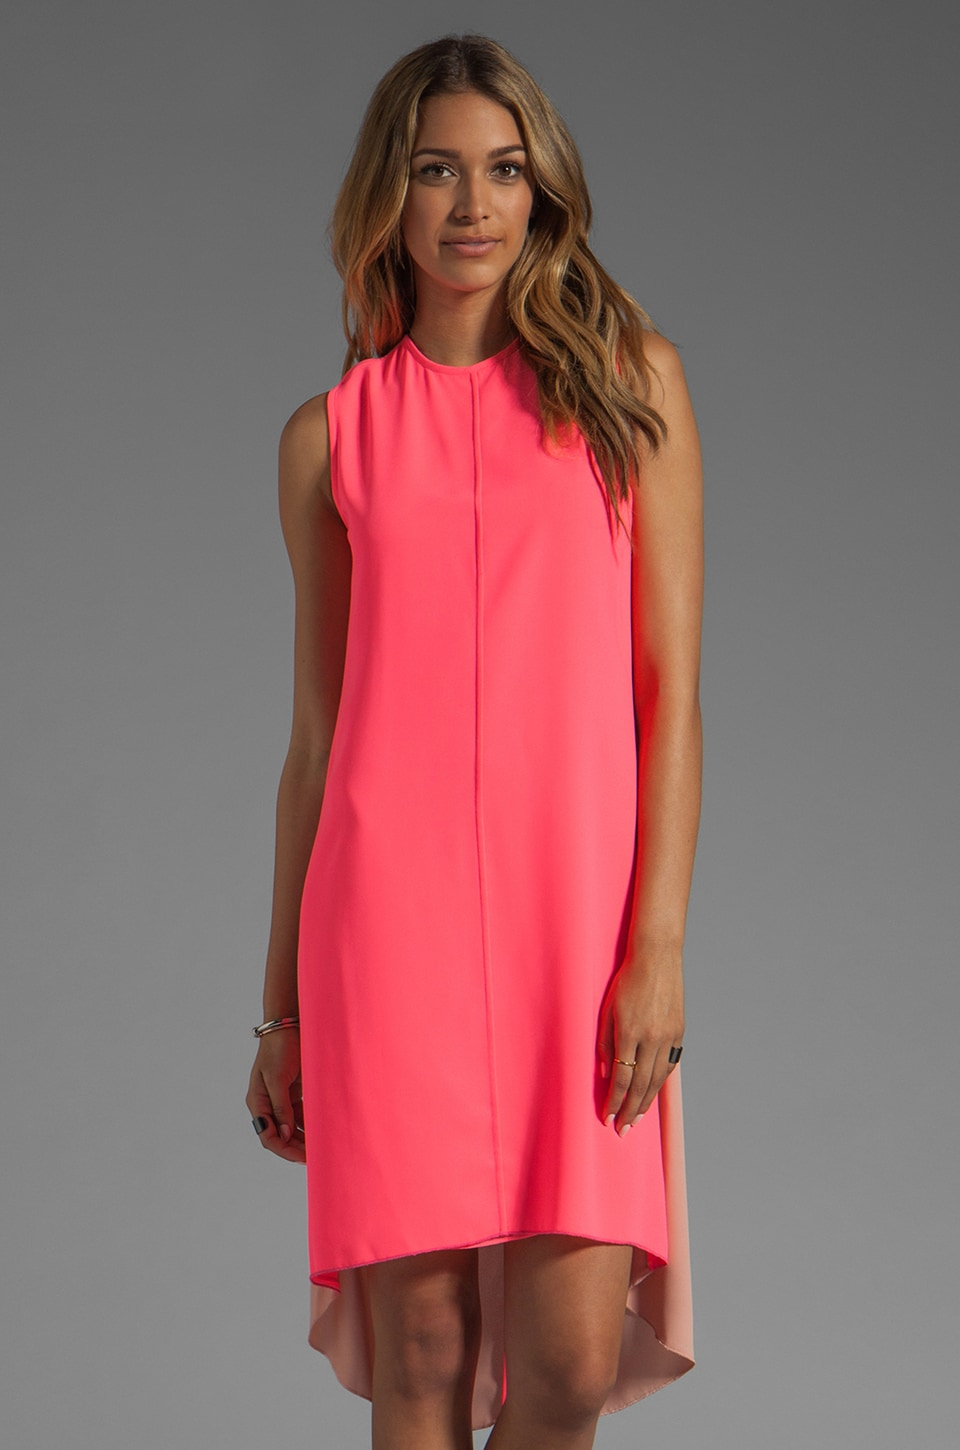 camilla and marc Reflection Diamond Jacquard Dress in Fluoro Pink w/ Nude Back